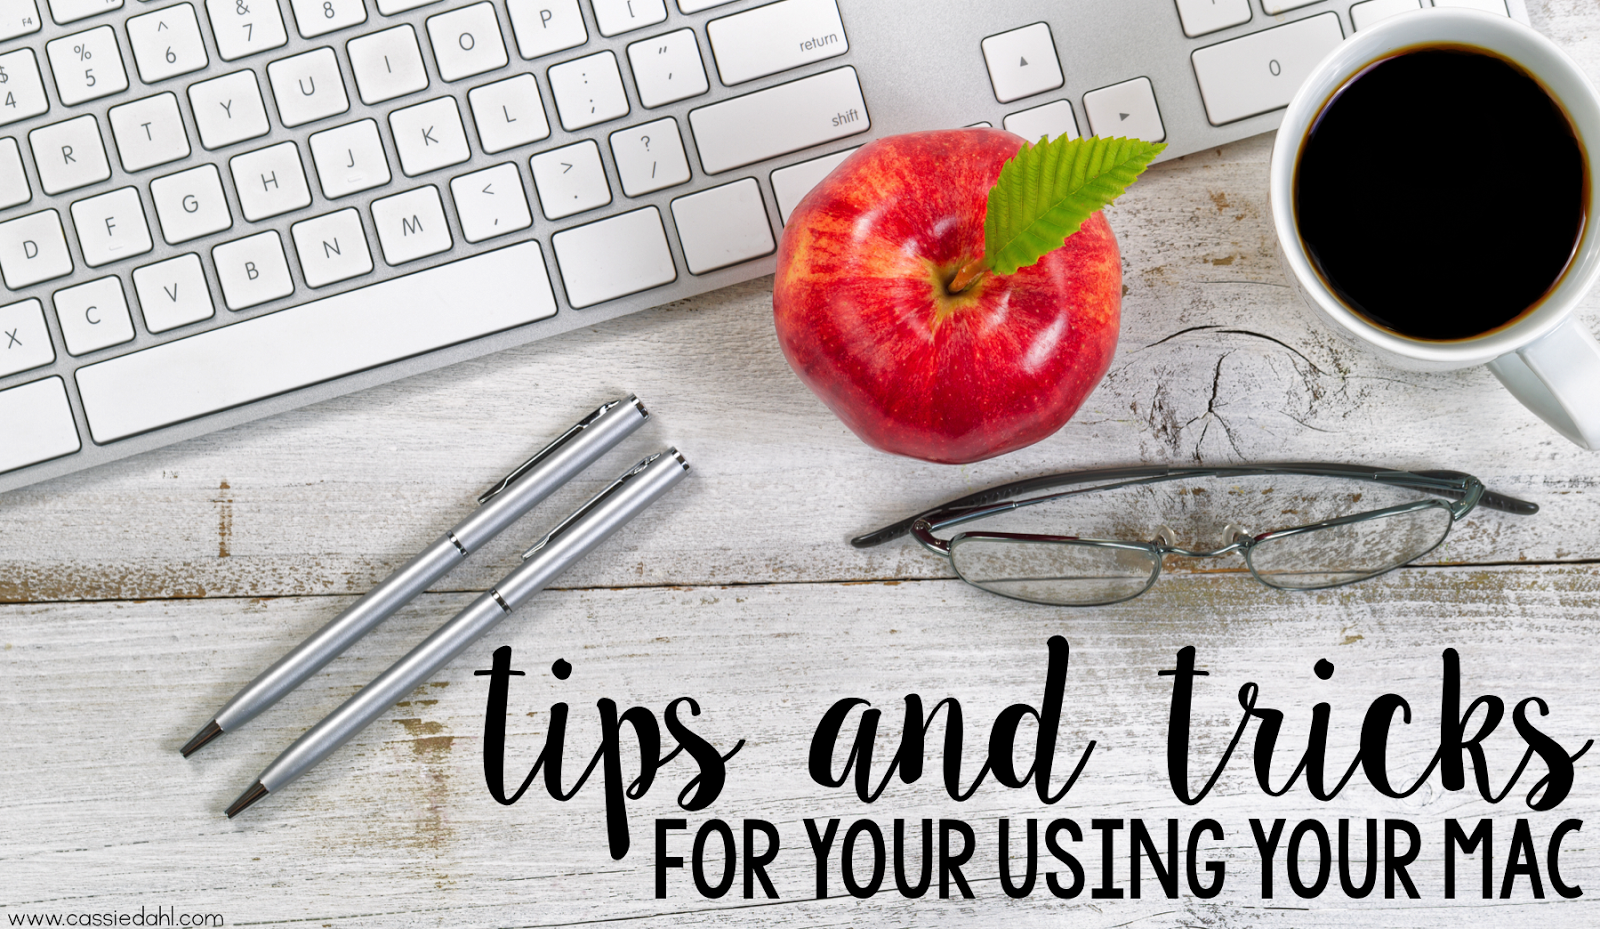 Having a Mac means you are a step ahead in the technology world, but do you know how to use it effectively, efficiently and effortlessly? This blog posts contains tons of tips and tricks for using your Mac! Did you know there are three ways to take a screenshot?